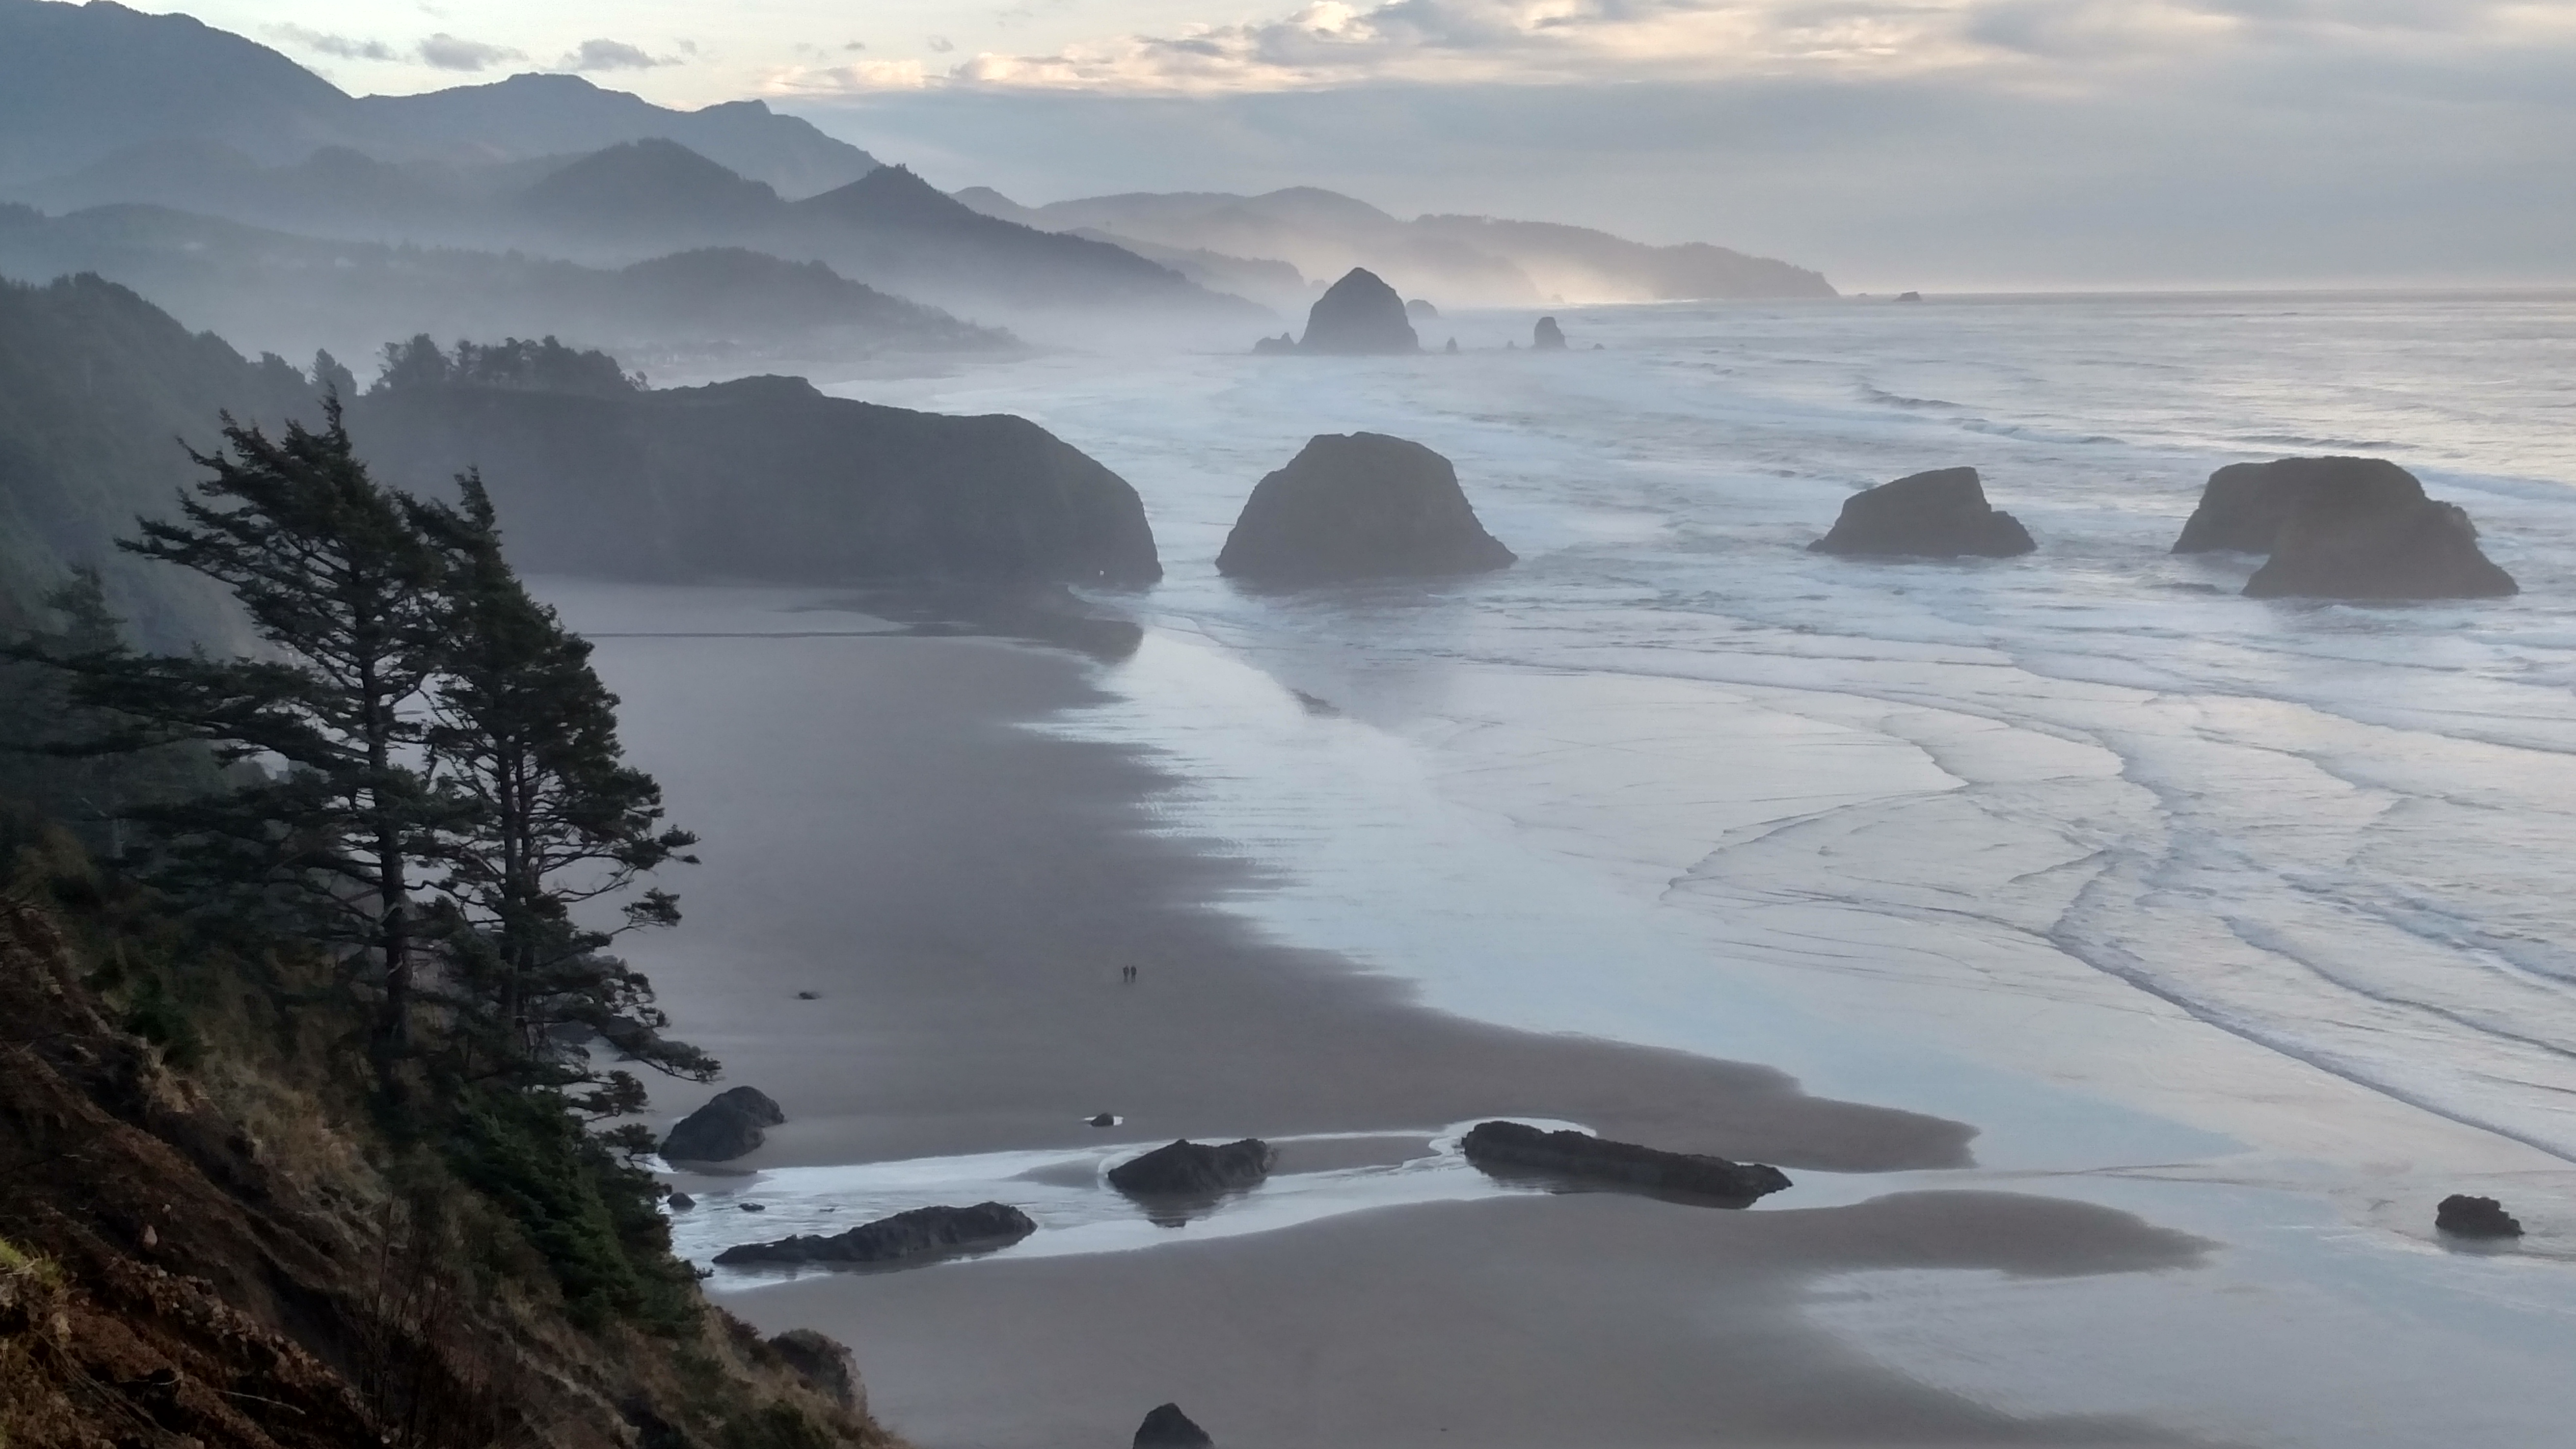 Crescent Beach and Cannon Beach